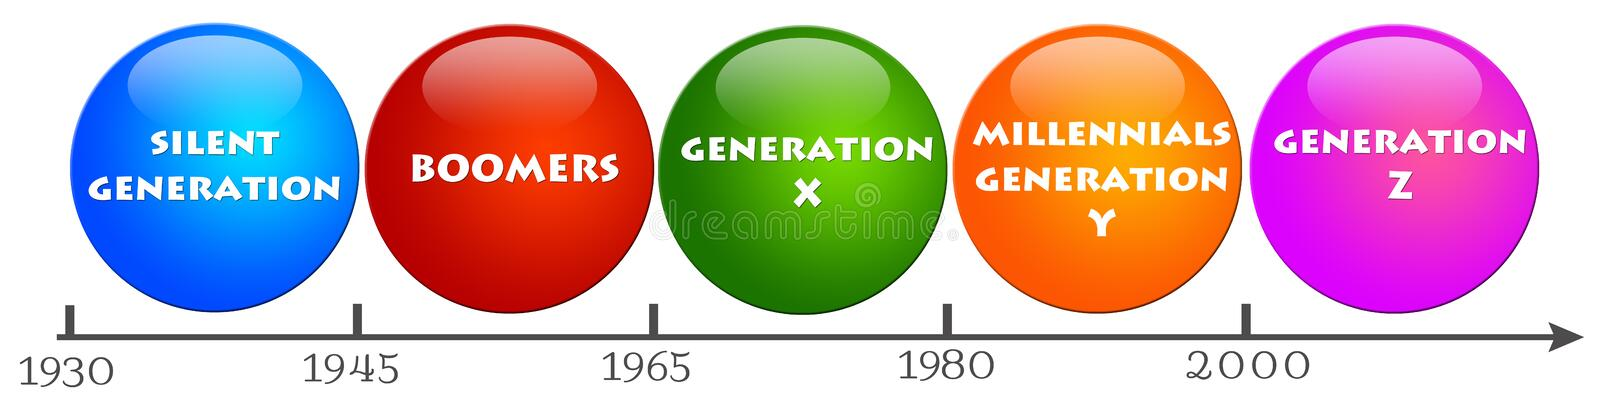 People generations royalty free illustration